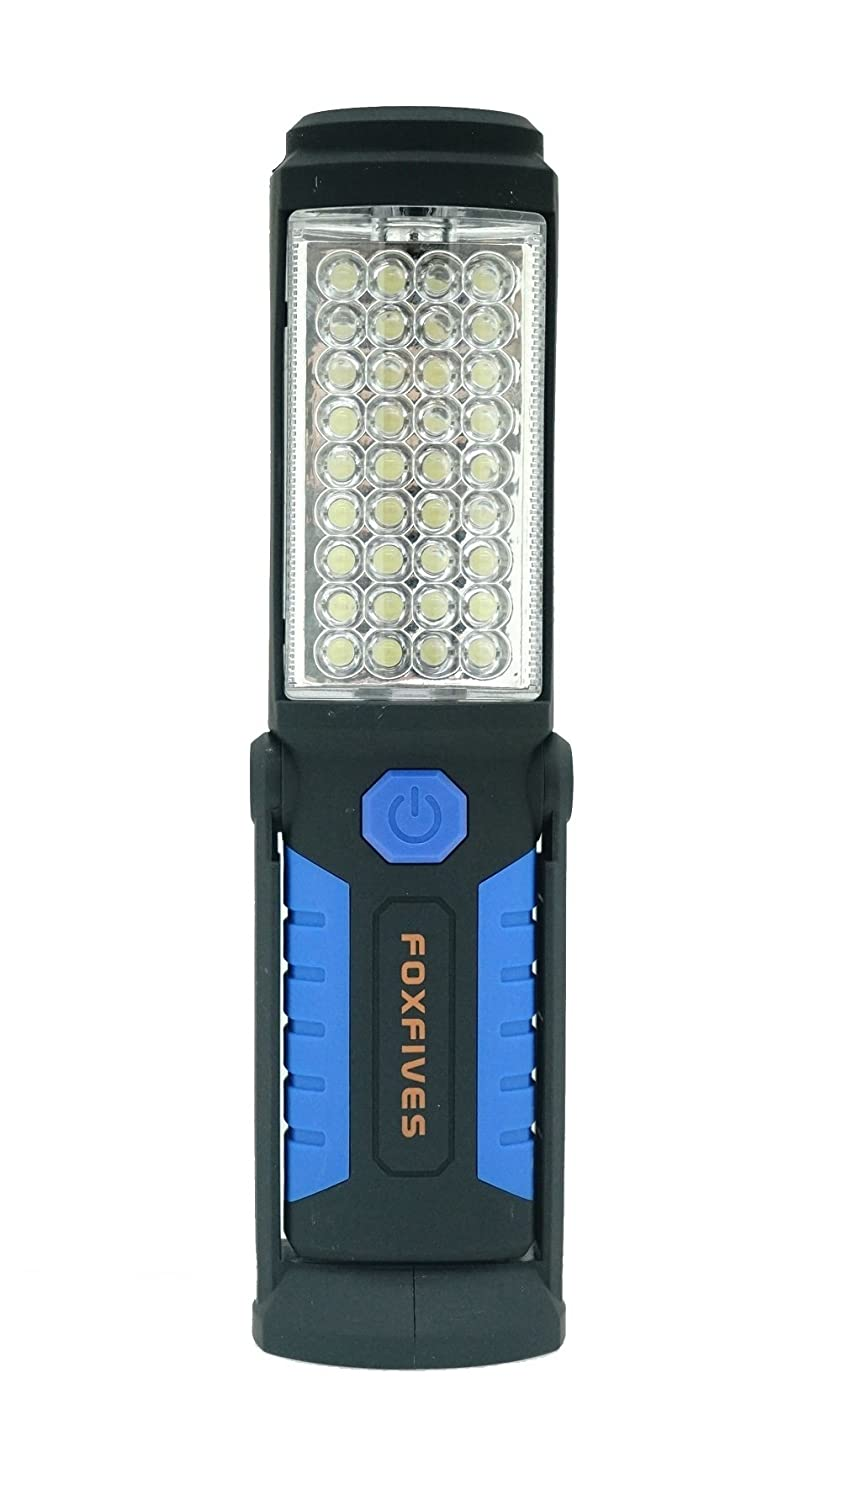 Rechargeable Inspection Lamp 36+5 LED Torch Camping Light Hands-Free Work Light Flashlight Magnet Base and Hanging Hook for Home, Auto Repair, Outdoor Camping Hiking Garage Emergencies Use (Blue) FOXFIVES